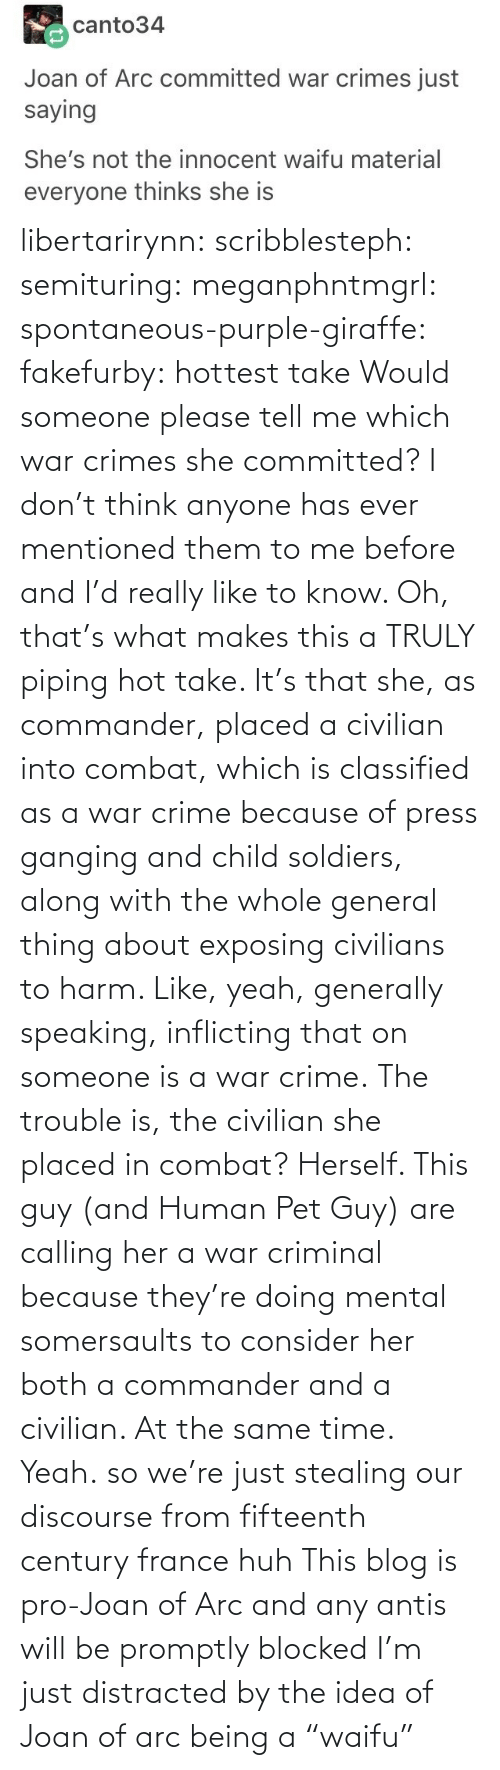 "promptly: libertarirynn: scribblesteph:  semituring:  meganphntmgrl:  spontaneous-purple-giraffe:   fakefurby: hottest take  Would someone please tell me which war crimes she committed? I don't think anyone has ever mentioned them to me before and I'd really like to know.    Oh, that's what makes this a TRULY piping hot take. It's that she, as commander, placed a civilian into combat, which is classified as a war crime because of press ganging and child soldiers, along with the whole general thing about exposing civilians to harm. Like, yeah, generally speaking, inflicting that on someone is a war crime. The trouble is, the civilian she placed in combat? Herself.  This guy (and Human Pet Guy) are calling her a war criminal because they're doing mental somersaults to consider her both a commander and a civilian. At the same time.  Yeah.  so we're just stealing our discourse from fifteenth century france huh   This blog is pro-Joan of Arc and any antis will be promptly blocked   I'm just distracted by the idea of Joan of arc being a ""waifu"""